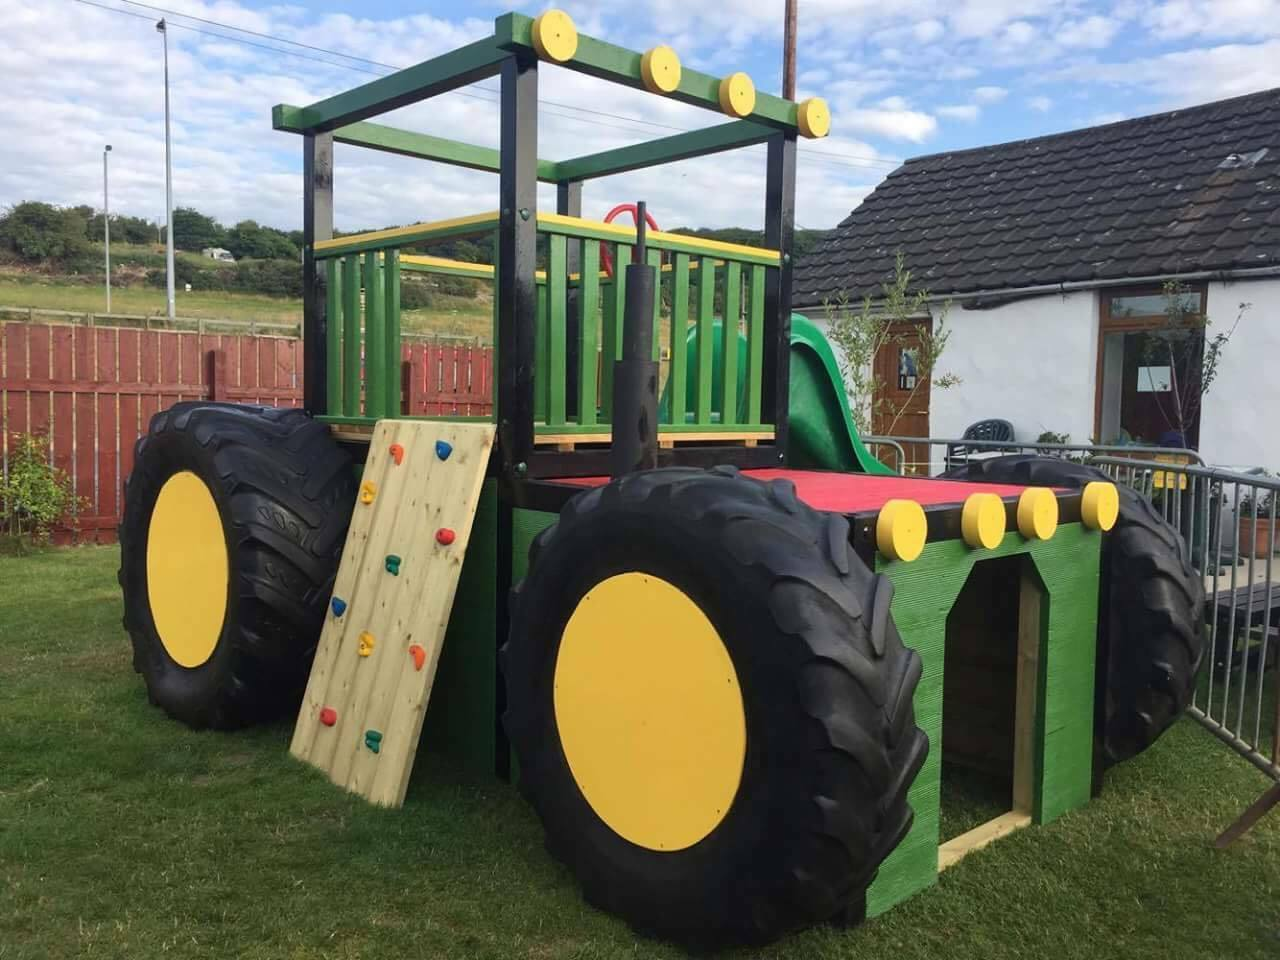 TRACTOR Huge OUTDOOR QUALITY WOODEN CLIMBING FRAME ROCKWALL Steps ...